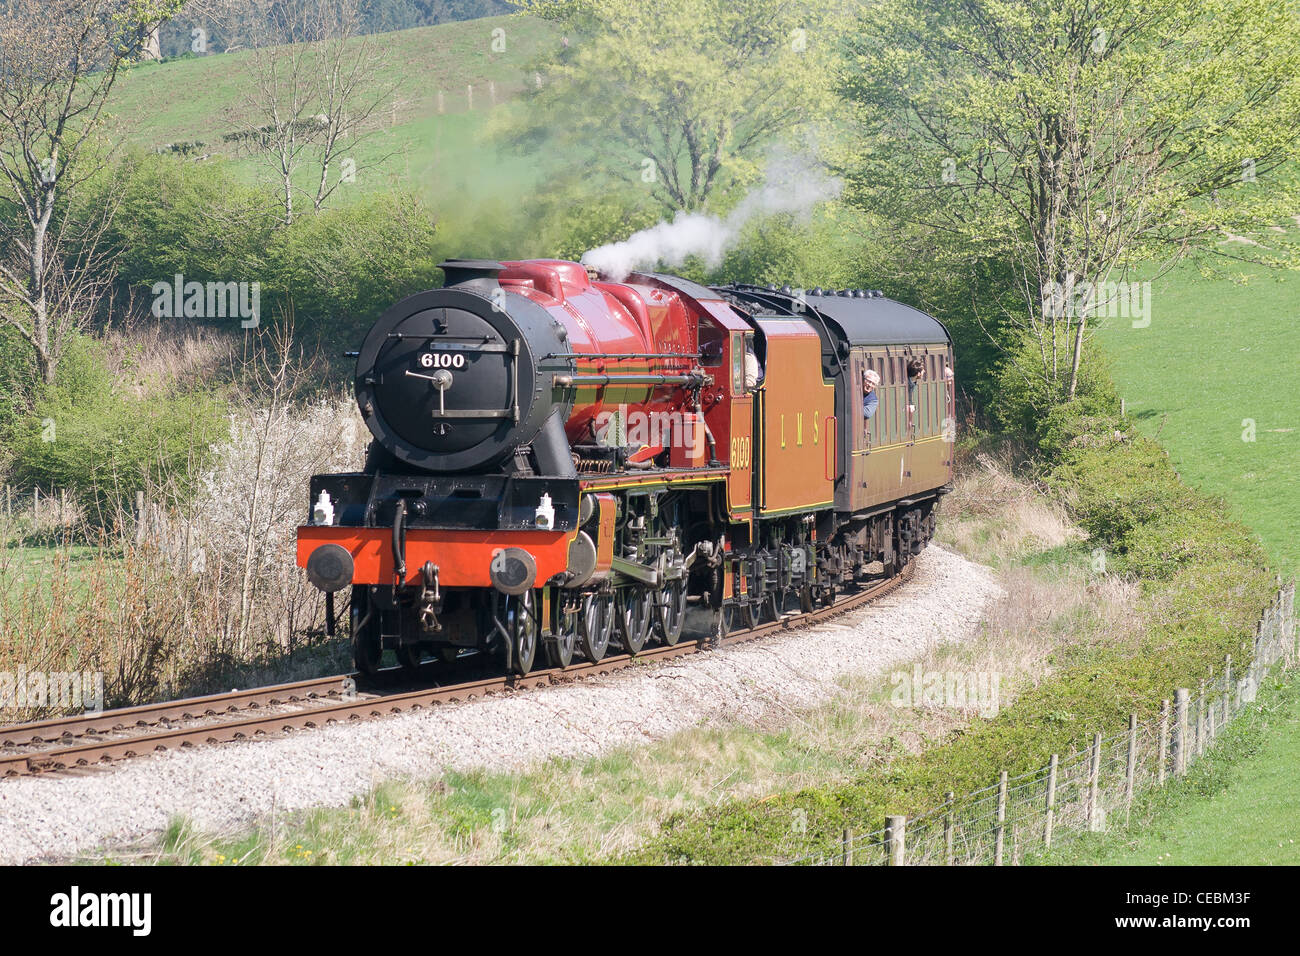 A steam locomotive, royal scot, with a passenger train on the Llangollen Railway - Stock Image